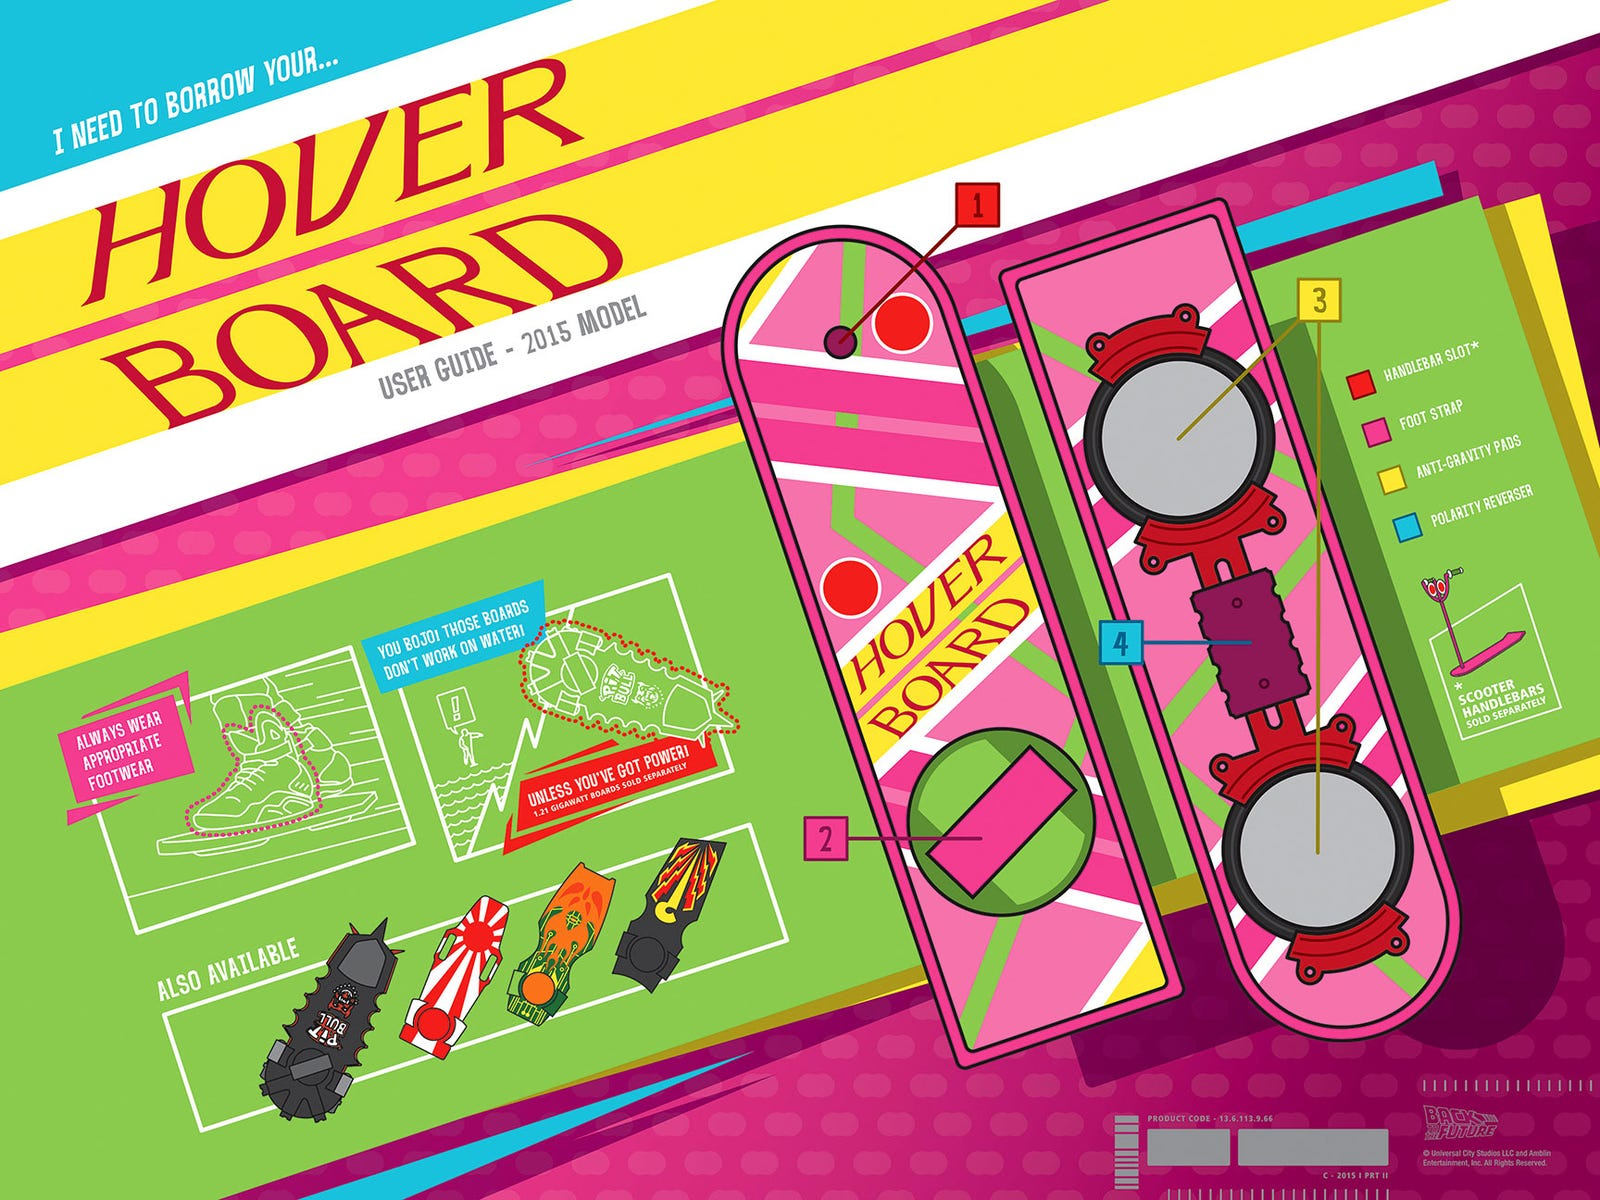 Back to the Future Infographic by Florey. 24 x 18 inches in an edition of 100. Costs $40. Also available in a variant.